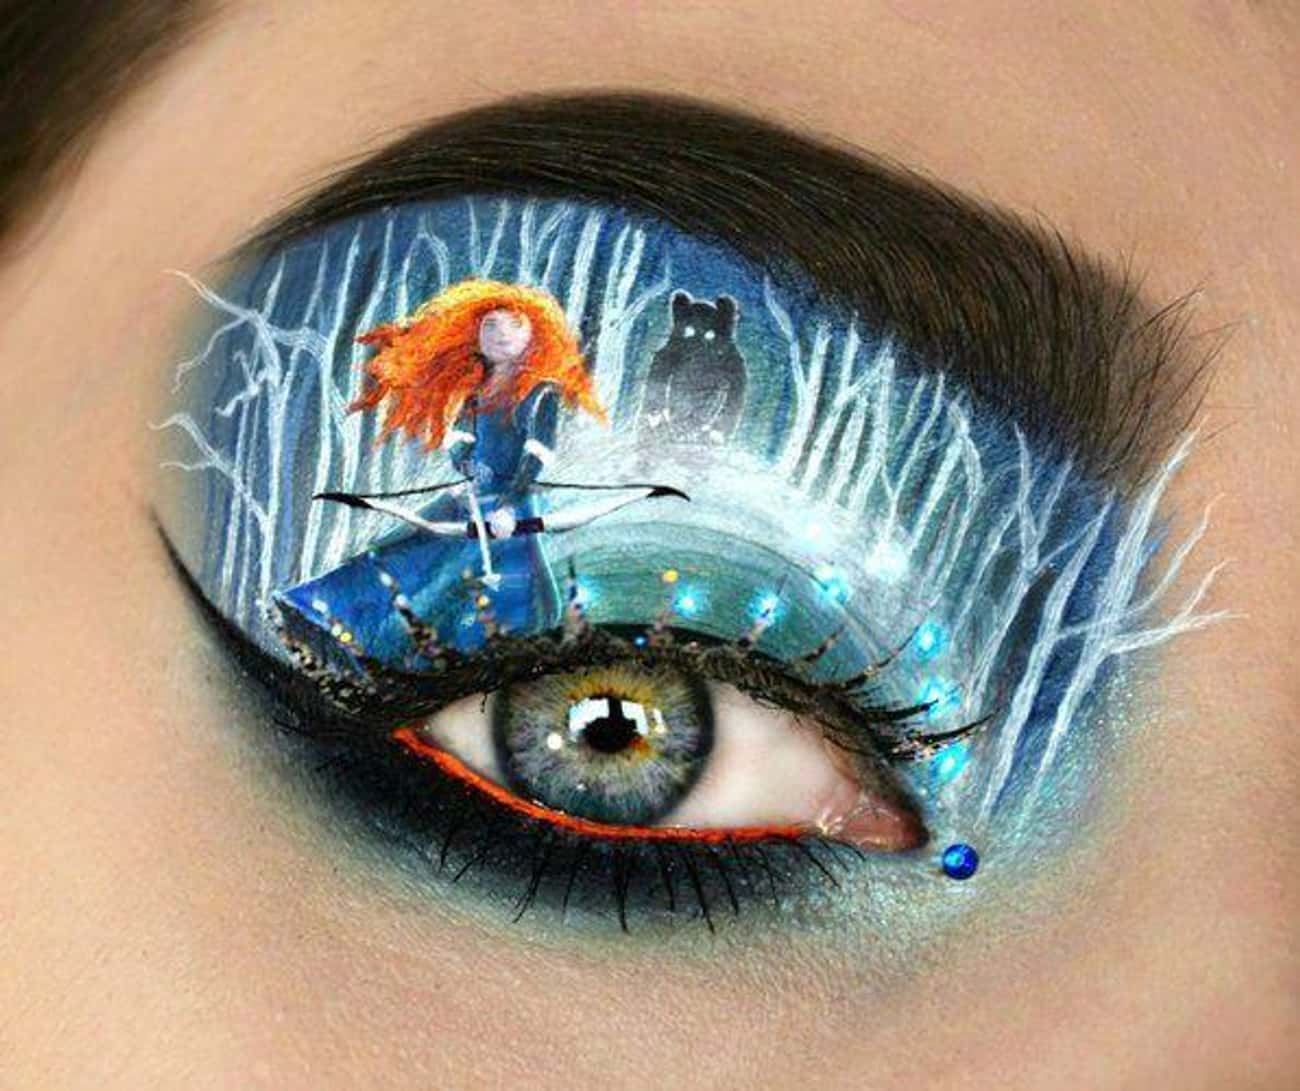 Brave is listed (or ranked) 4 on the list Disney Makeup That's Beyond Magical